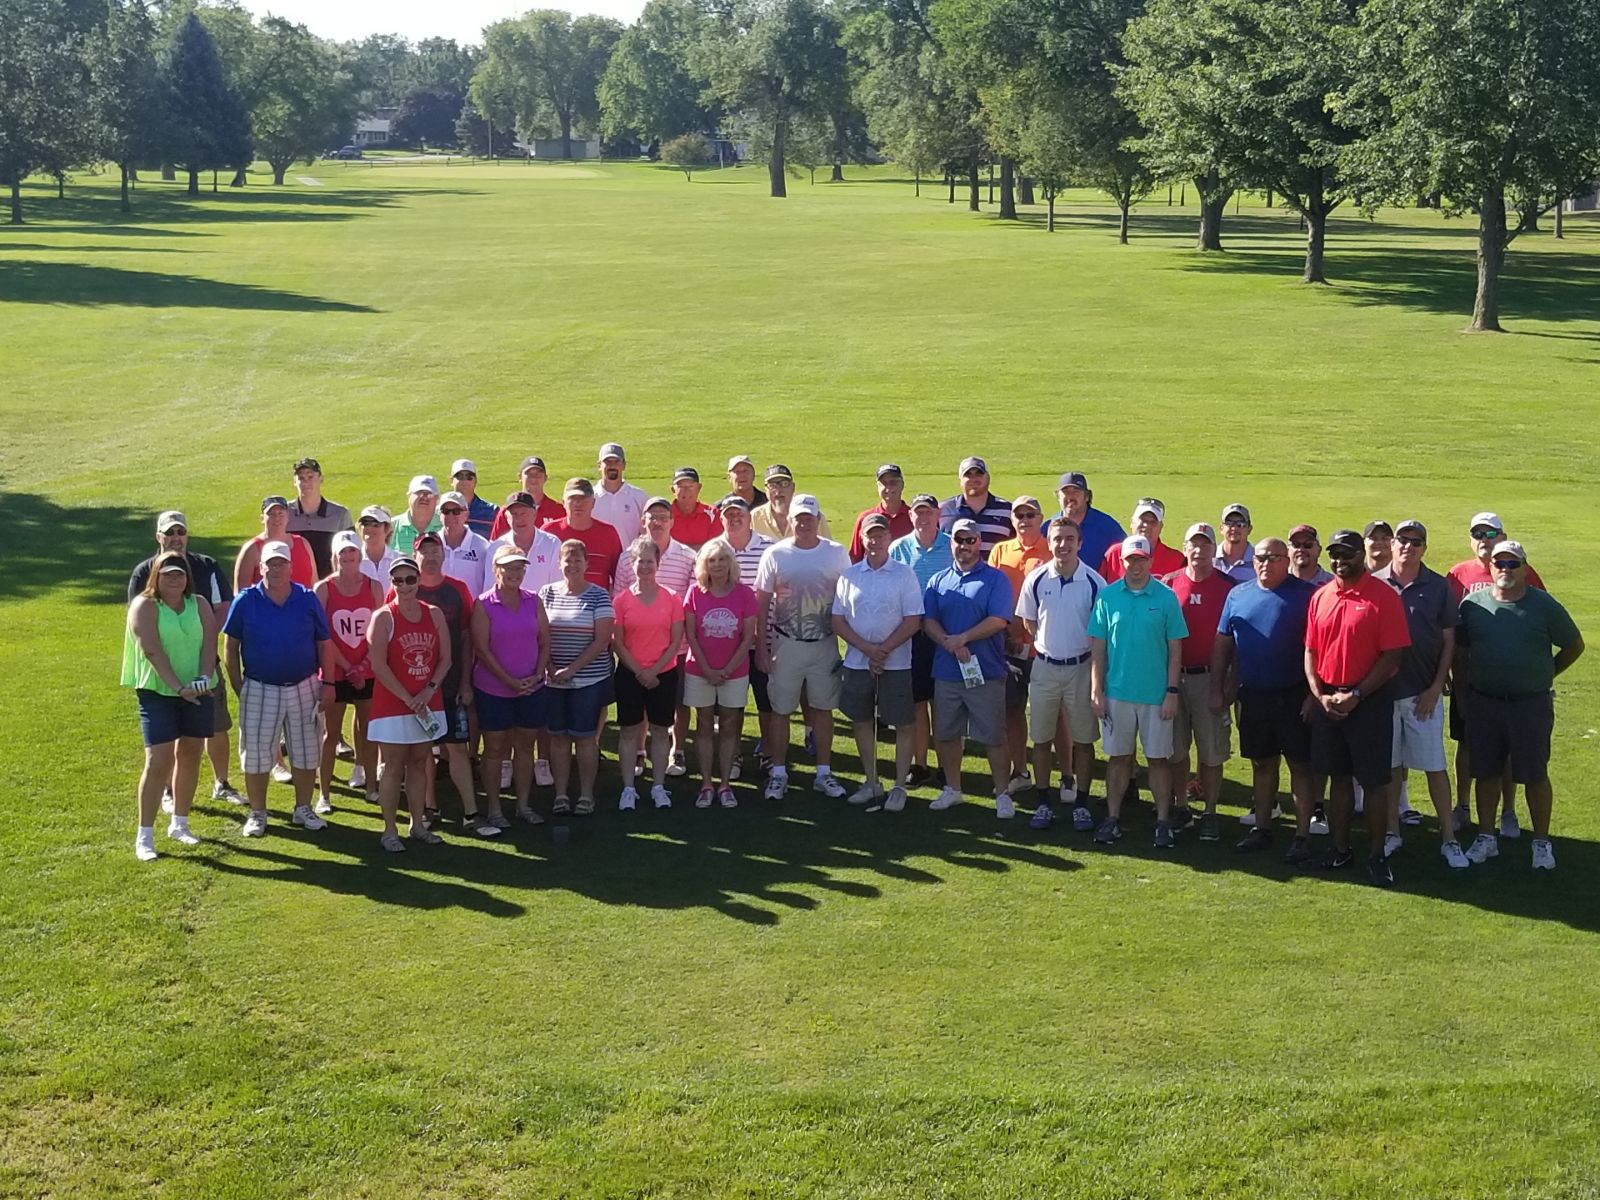 Group poses for photo on Elkhorn Valley golf course after tournament